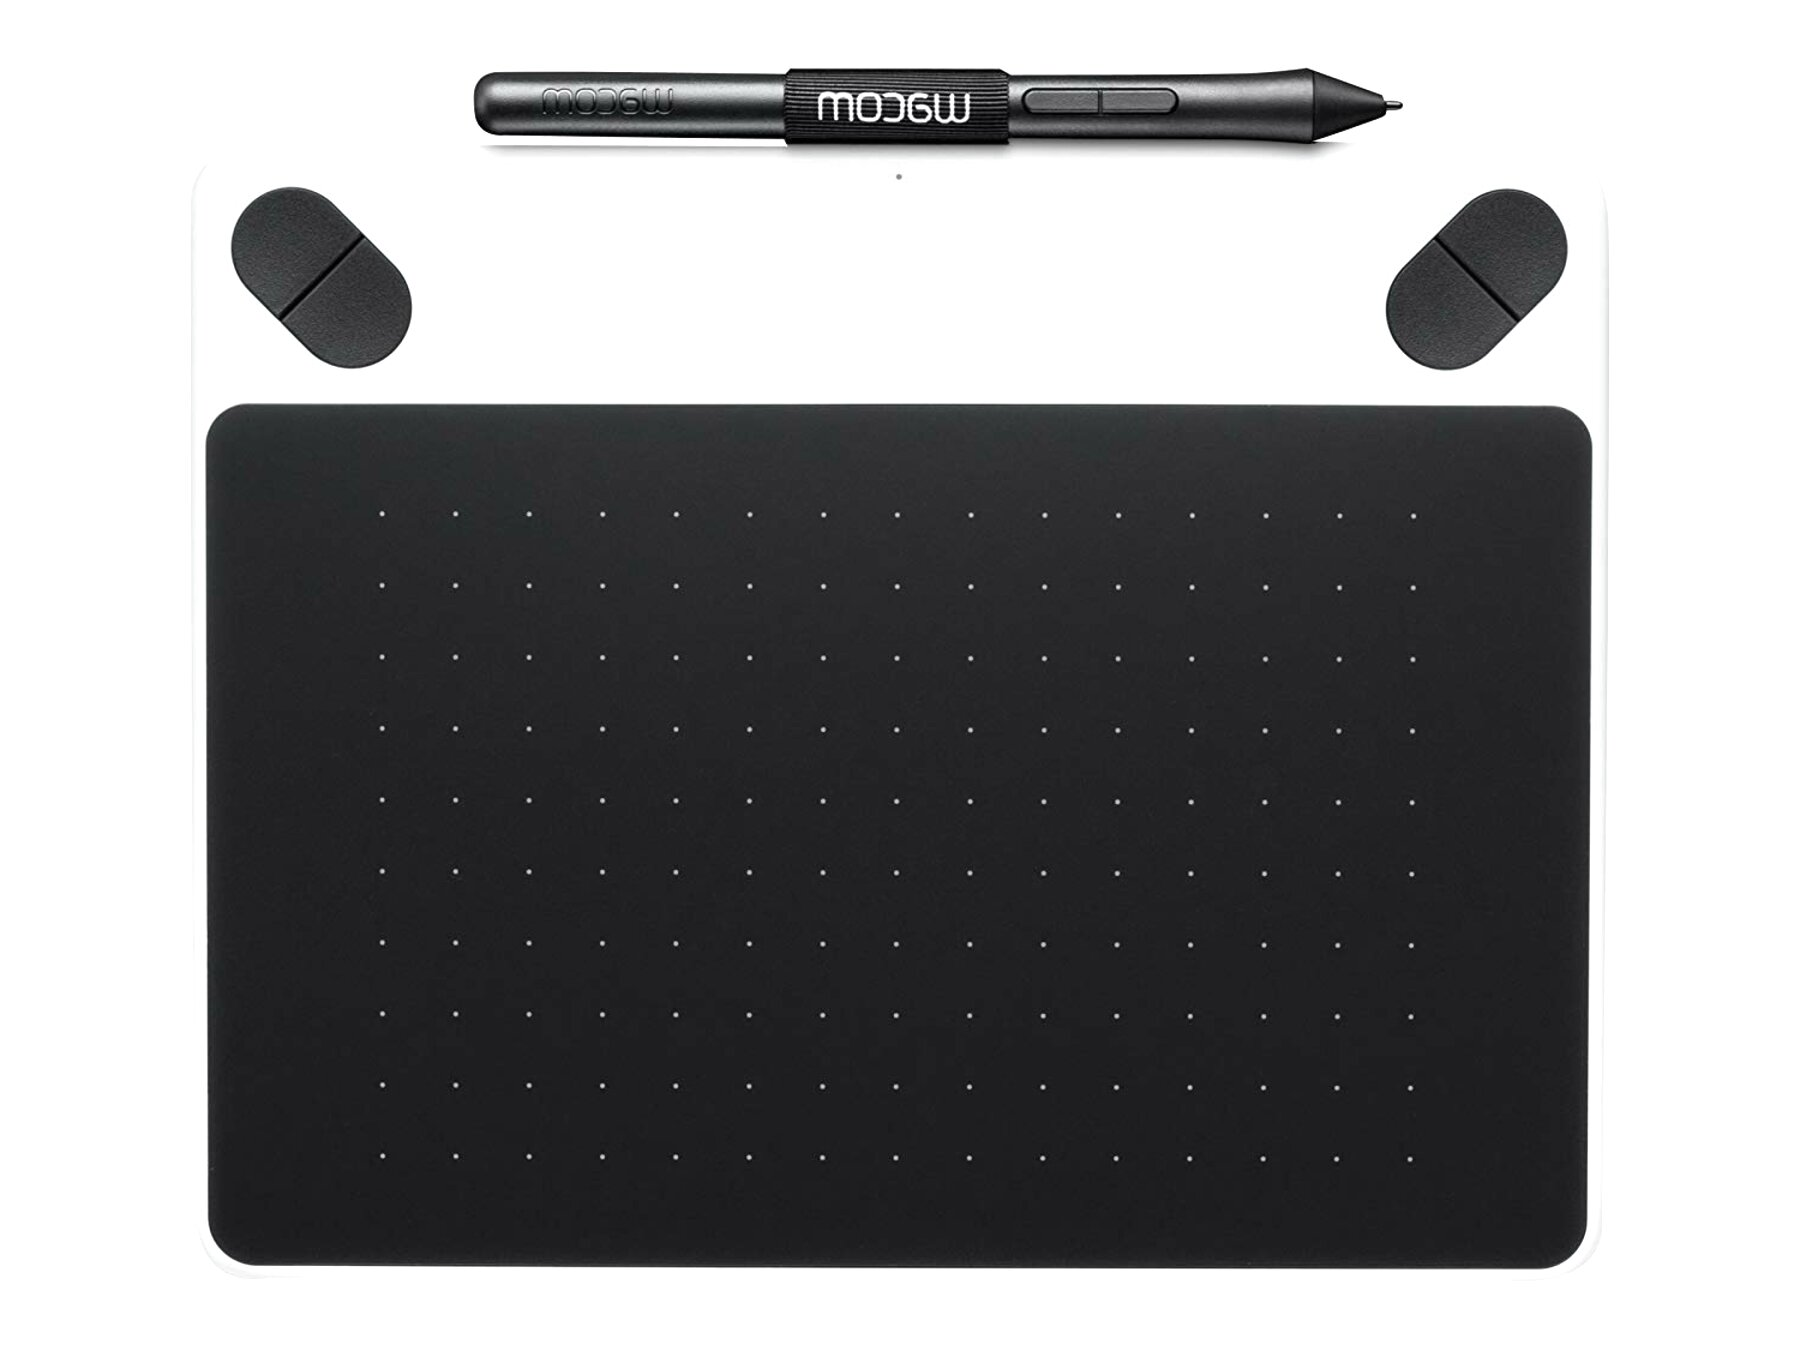 wacom intuos for sale